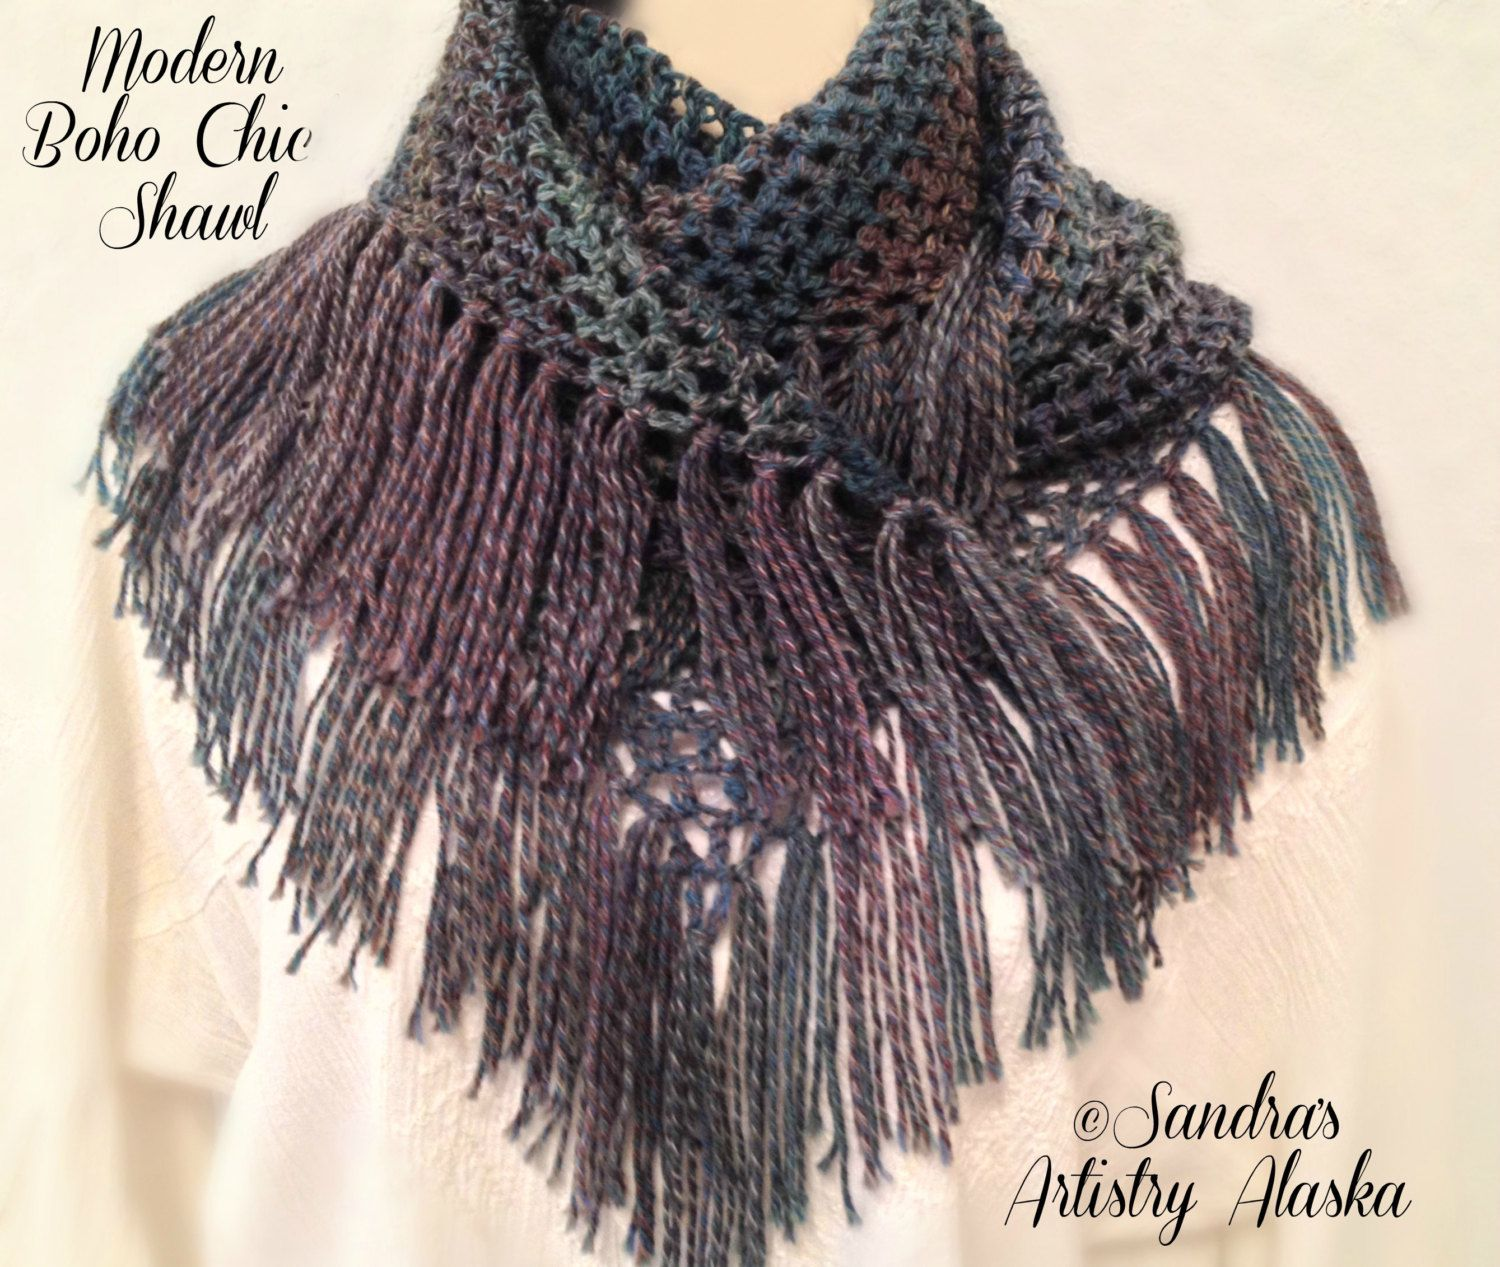 A personal favorite from my Etsy shop https://www.etsy.com/listing/290903849/modern-boho-chic-shawl-large-57l-x-27w